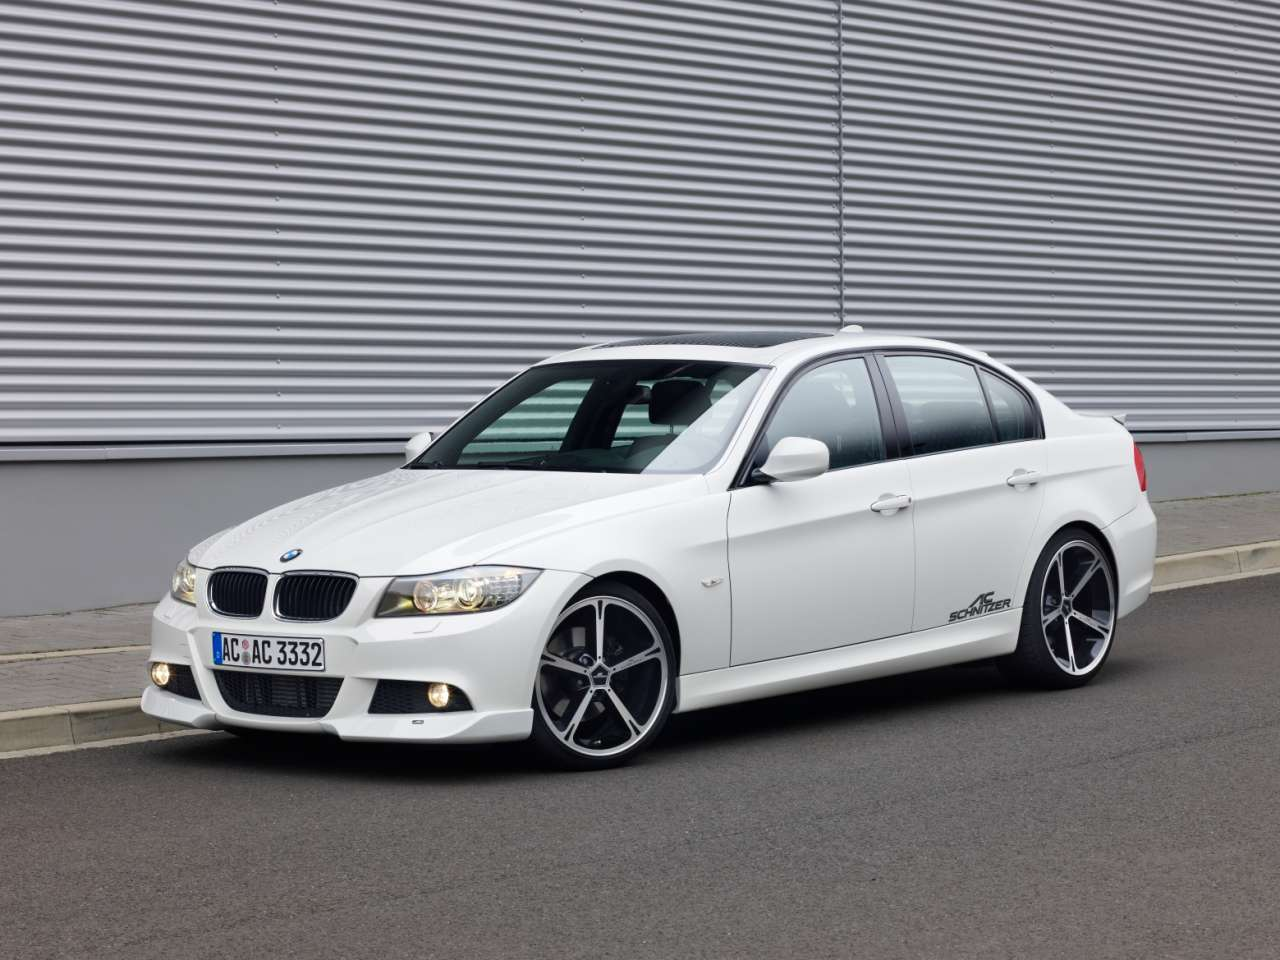 Other cars bmw 320d touring bmw 3 series bmw 3er - Bmw 3 Series History Photos On Better Parts Ltd